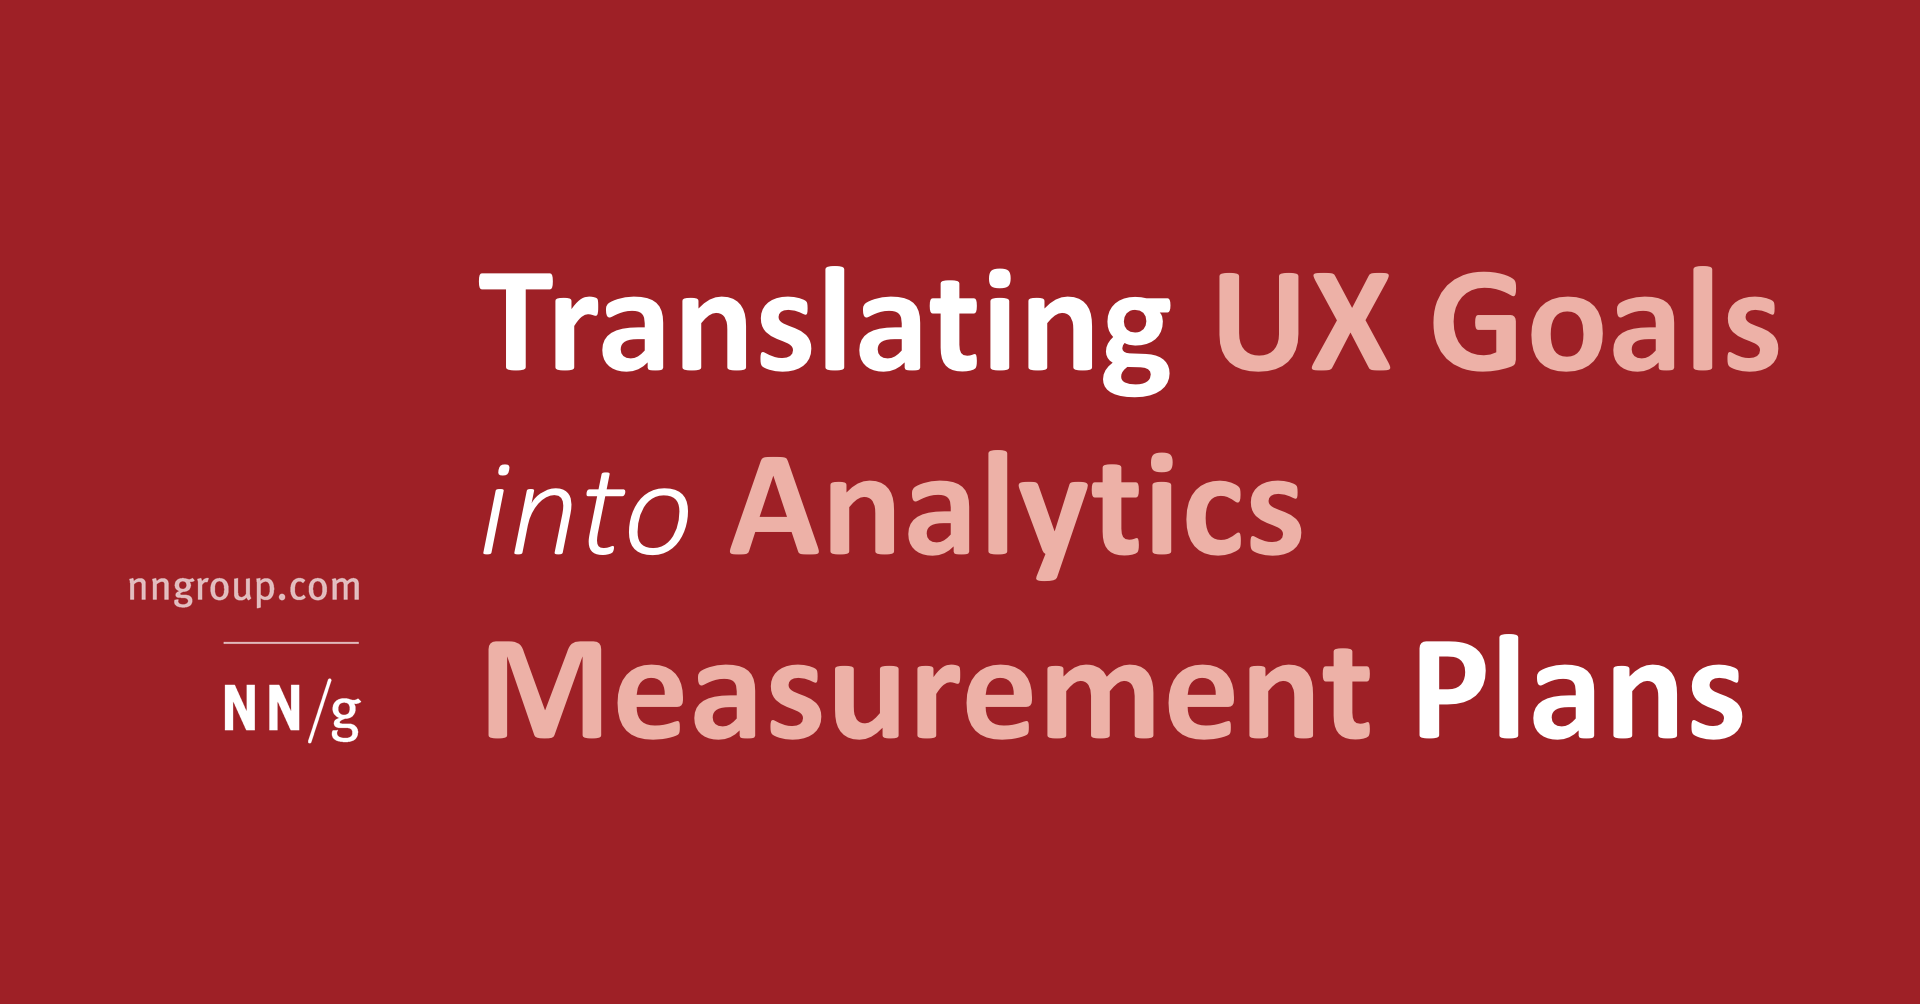 Translating Ux Goals Into Analytics Measurement Plans